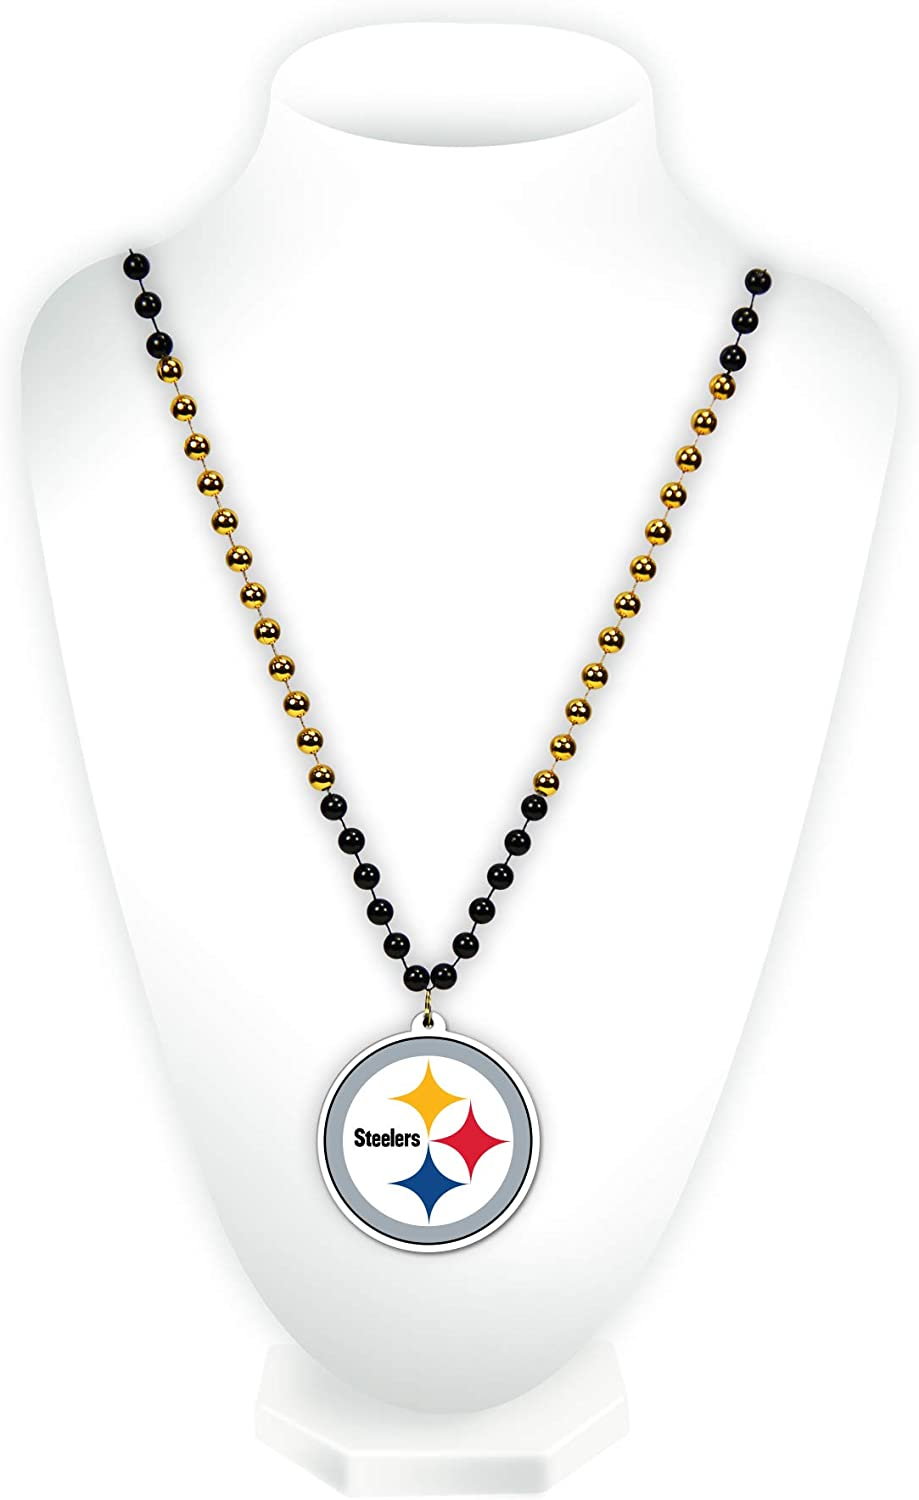 Pittsburgh Steelers NFL Rico Industries  Team Logo Mardi Gras Style Beads